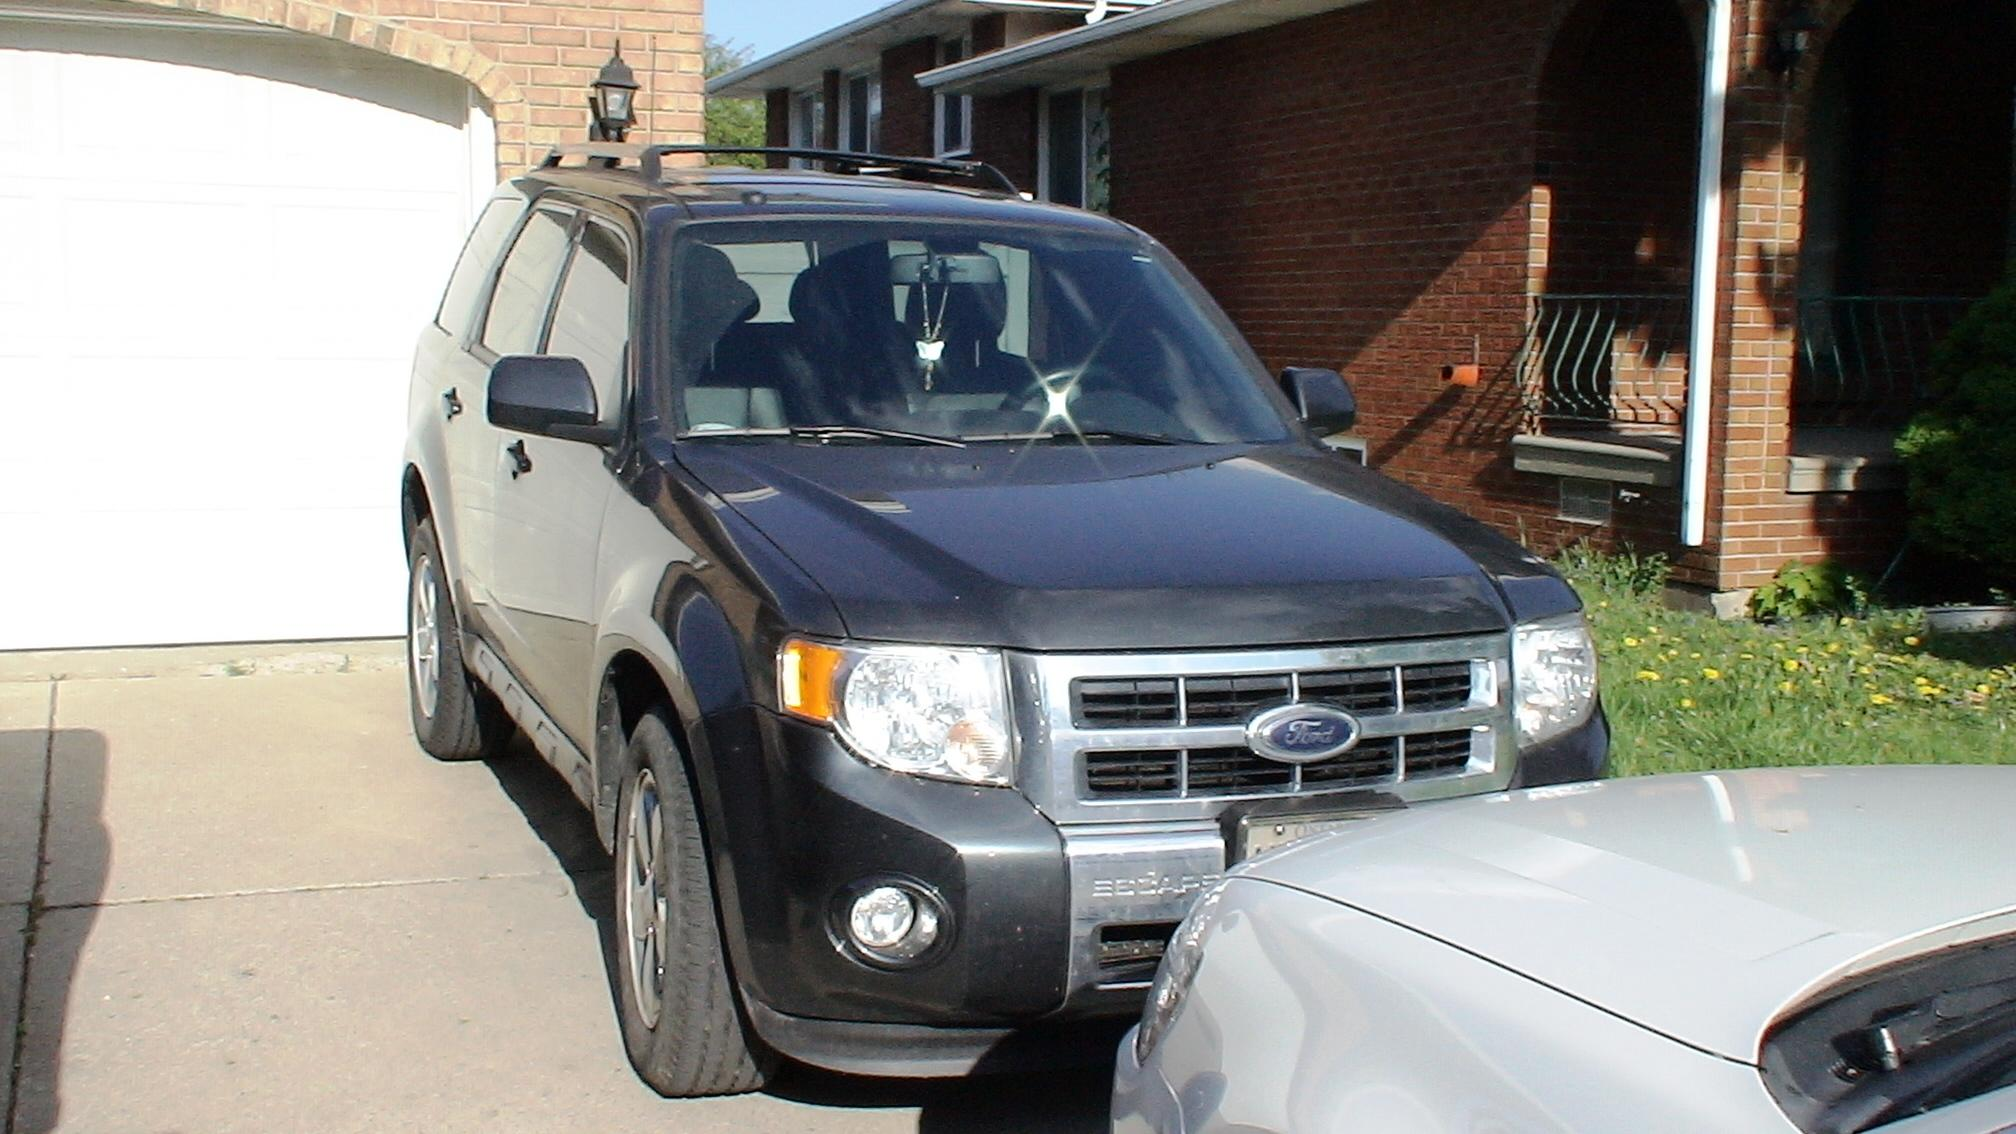 CanadianLonghorn's 2009 Ford Escape